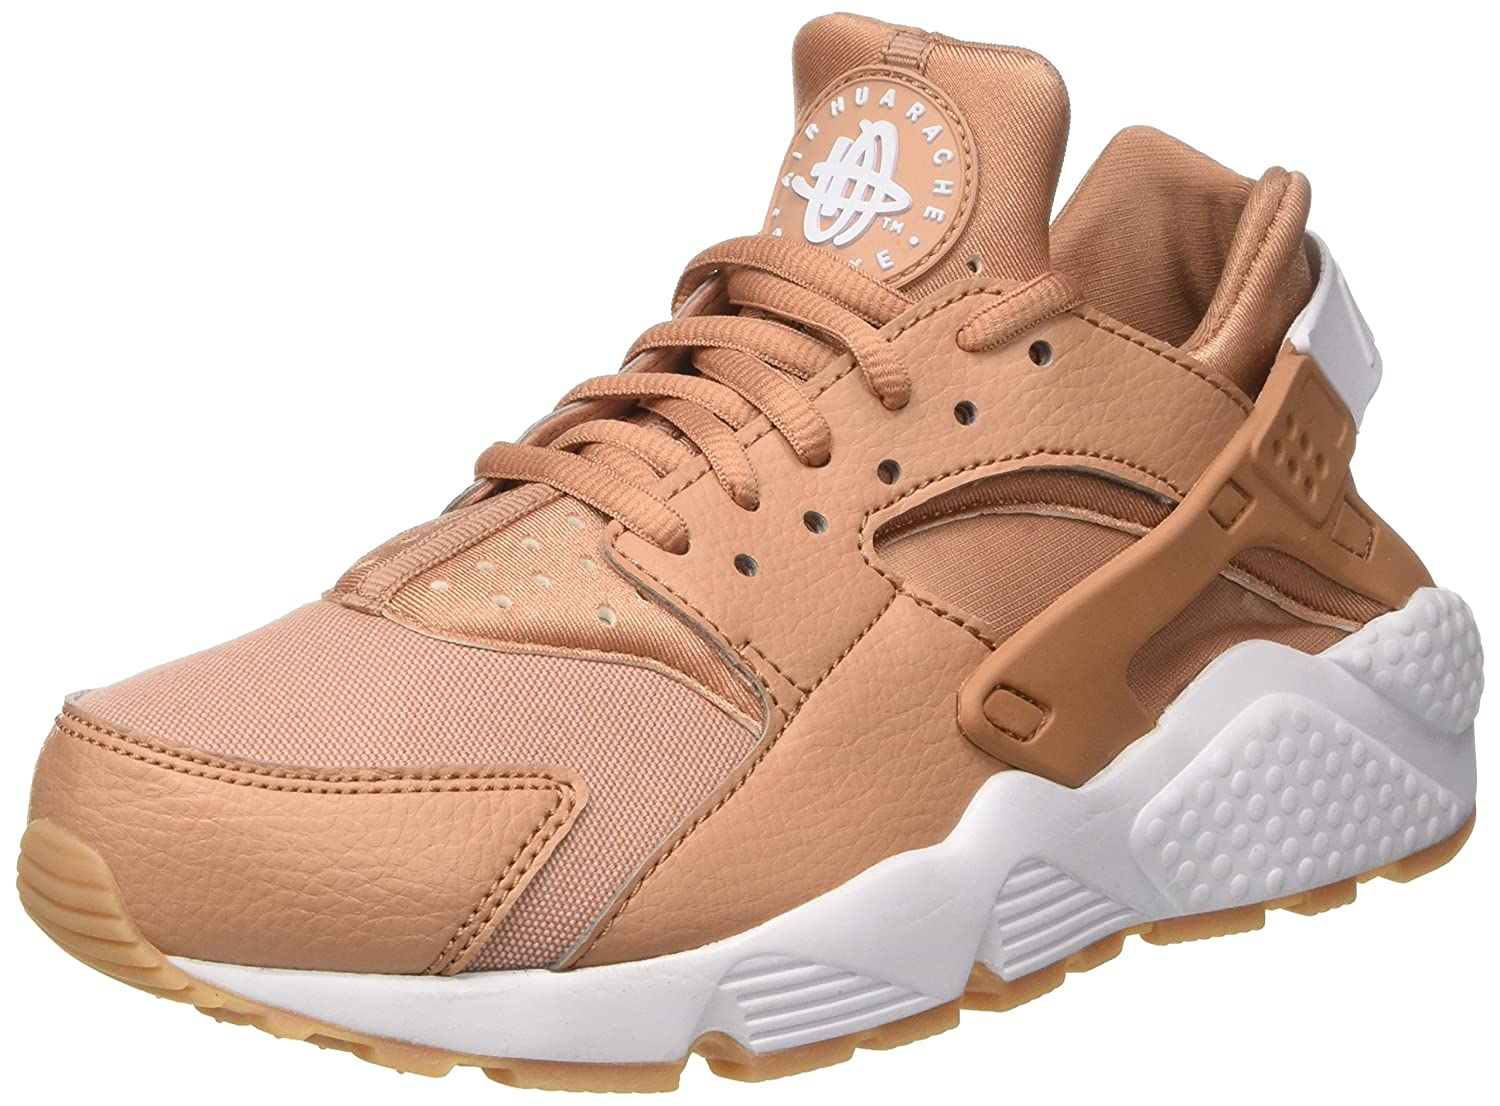 cdc027bd82f1 Nike Women s WMNS Air Huarache Run Trainers